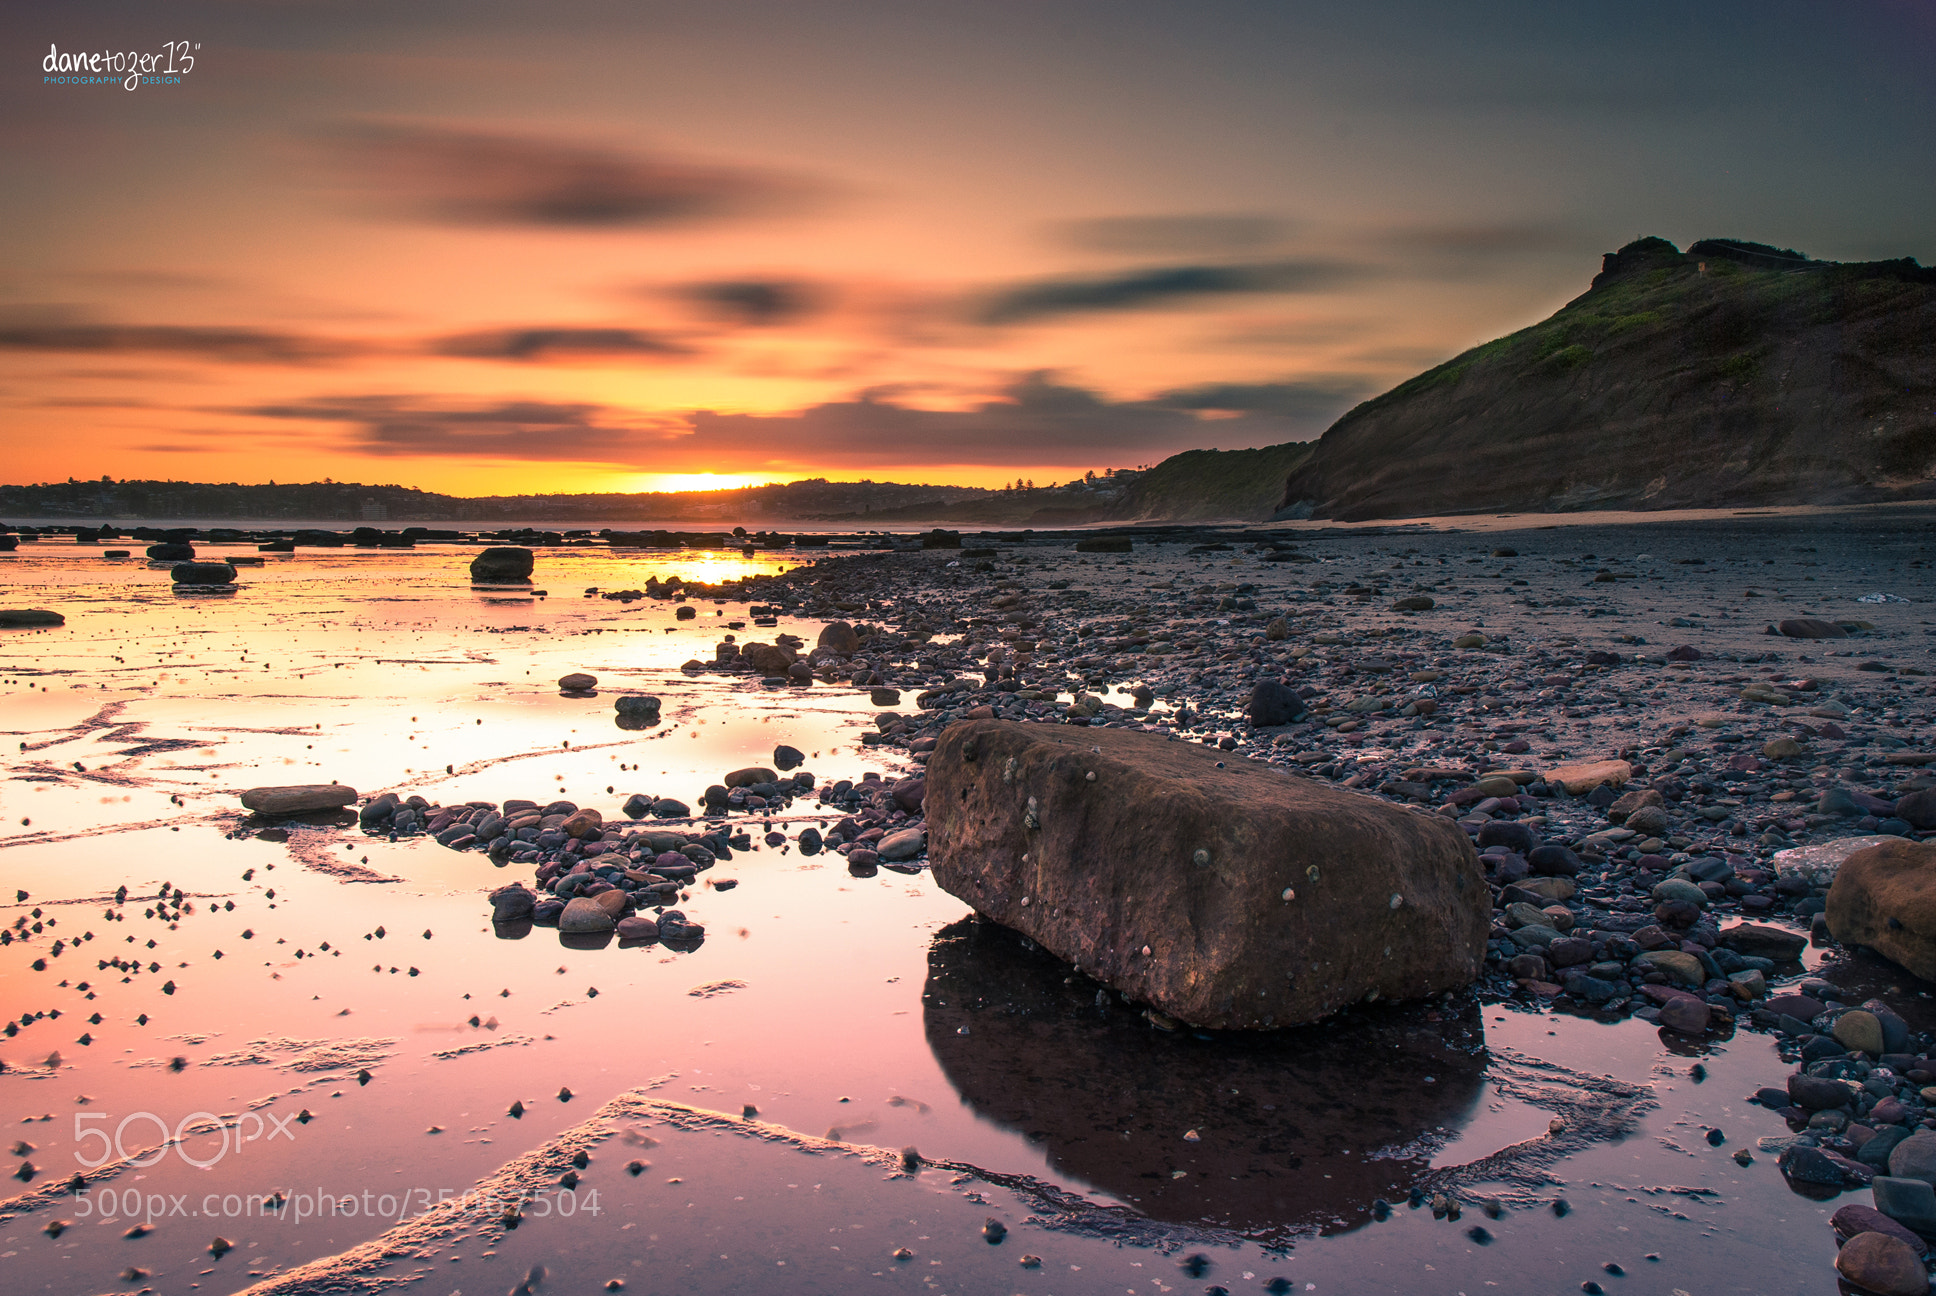 Photograph Long Reef Sunset by Dane Tozer on 500px